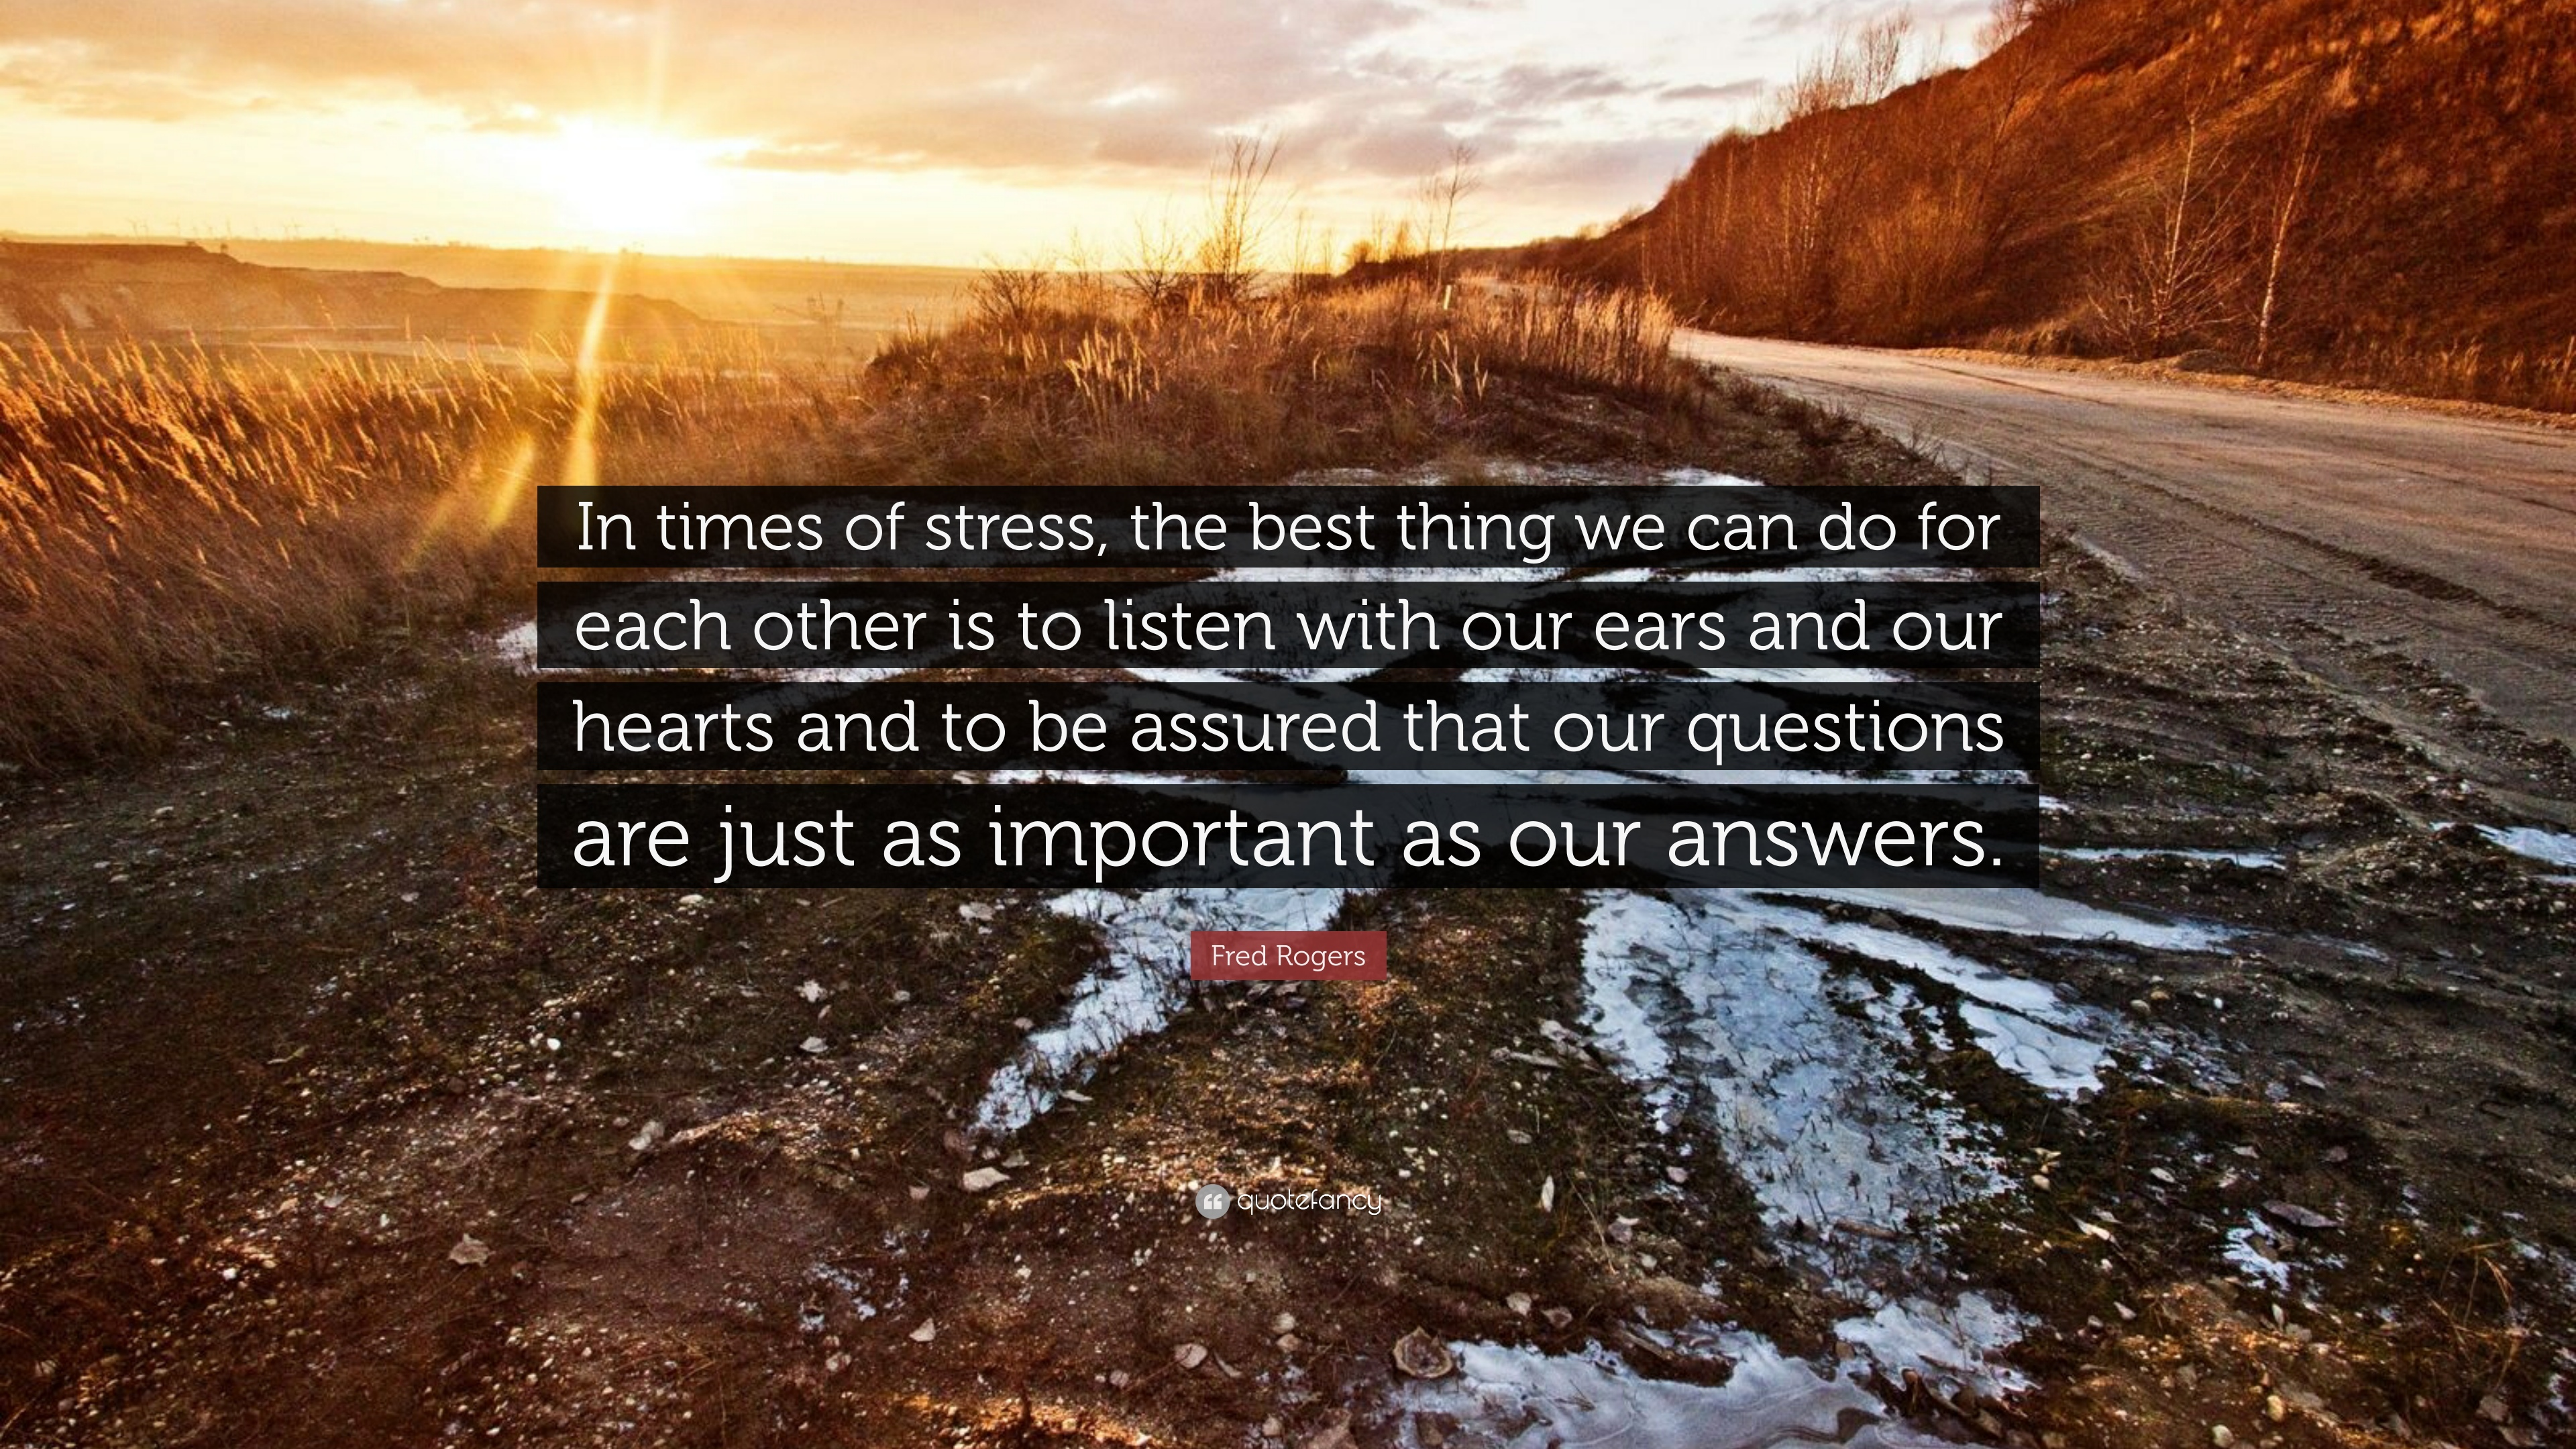 Fred Rogers Quote In Times Of Stress The Best Thing We Can Do For Each Other Is To Listen With Our Ears And Our Hearts And To Be Assured 12 Wallpapers Quotefancy